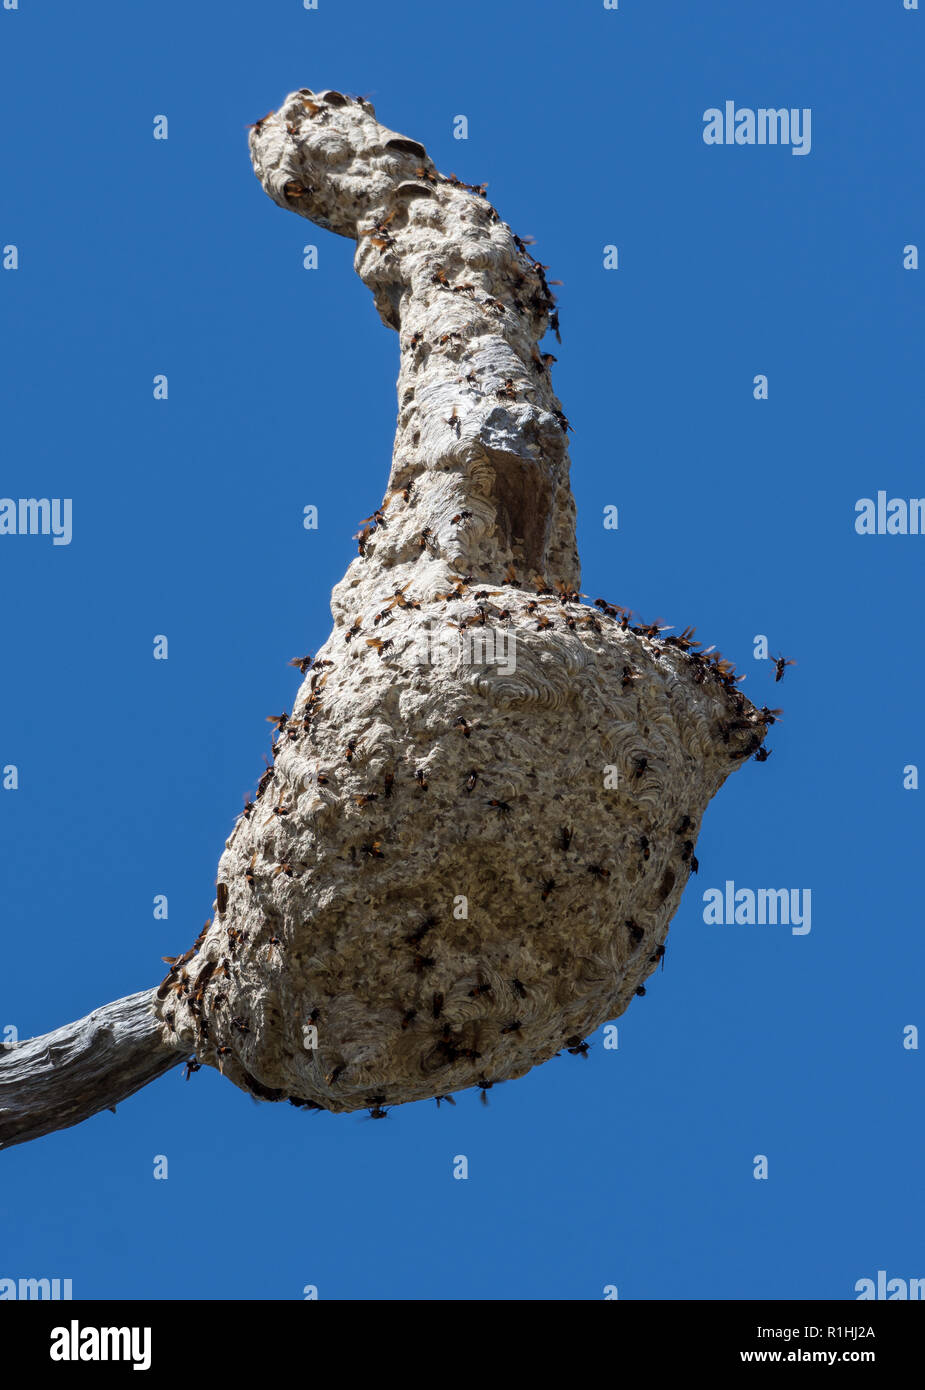 Wasps fanning their nest built high up on a tree. Waigeo Island, Raja Ampat, Indonesia - Stock Image